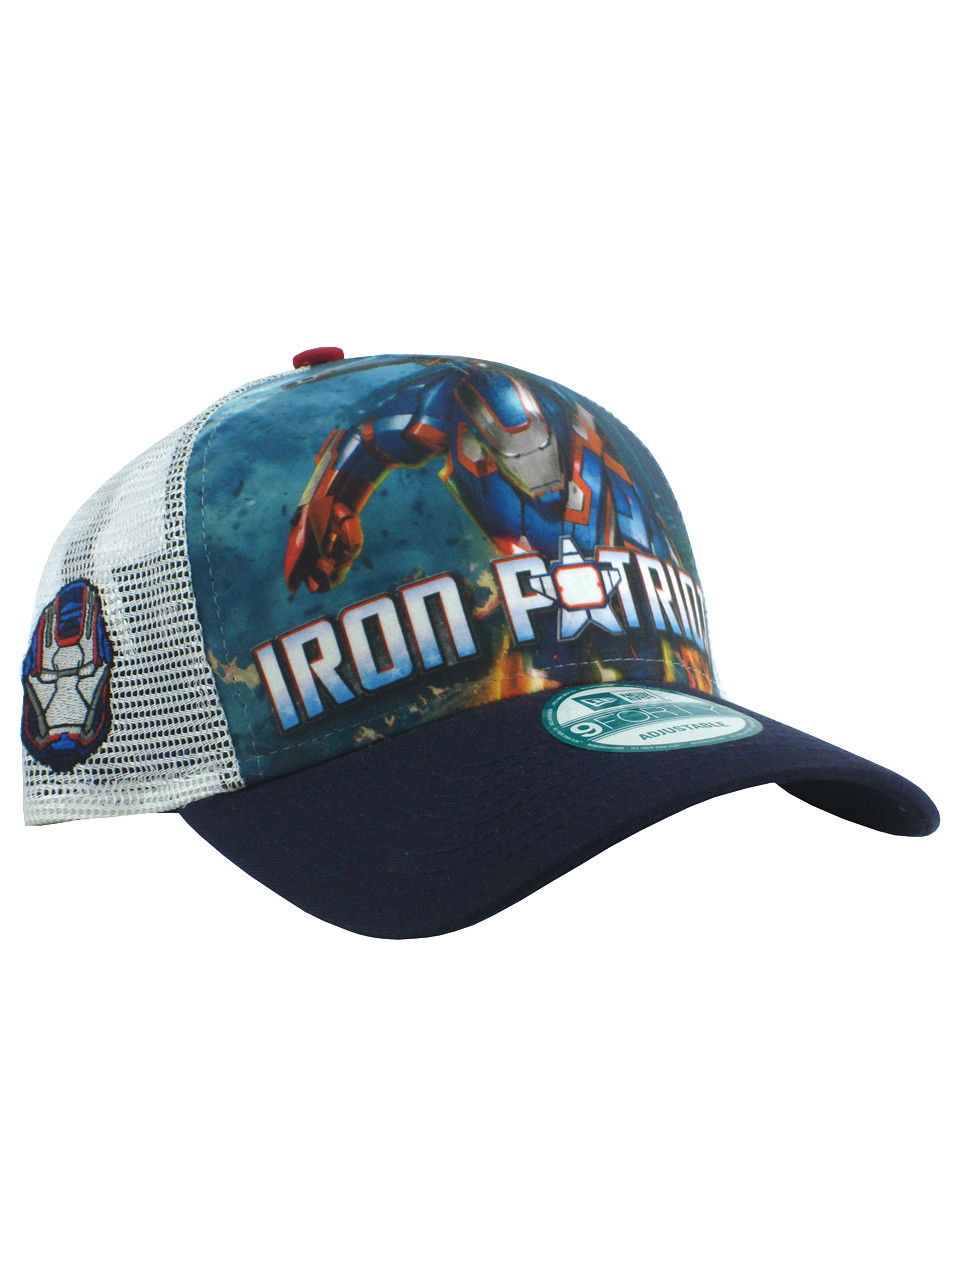 New Era Iron Man 3 Iron Patriot 9forty Adjustable Trucker Hat View 1 934c46c32202